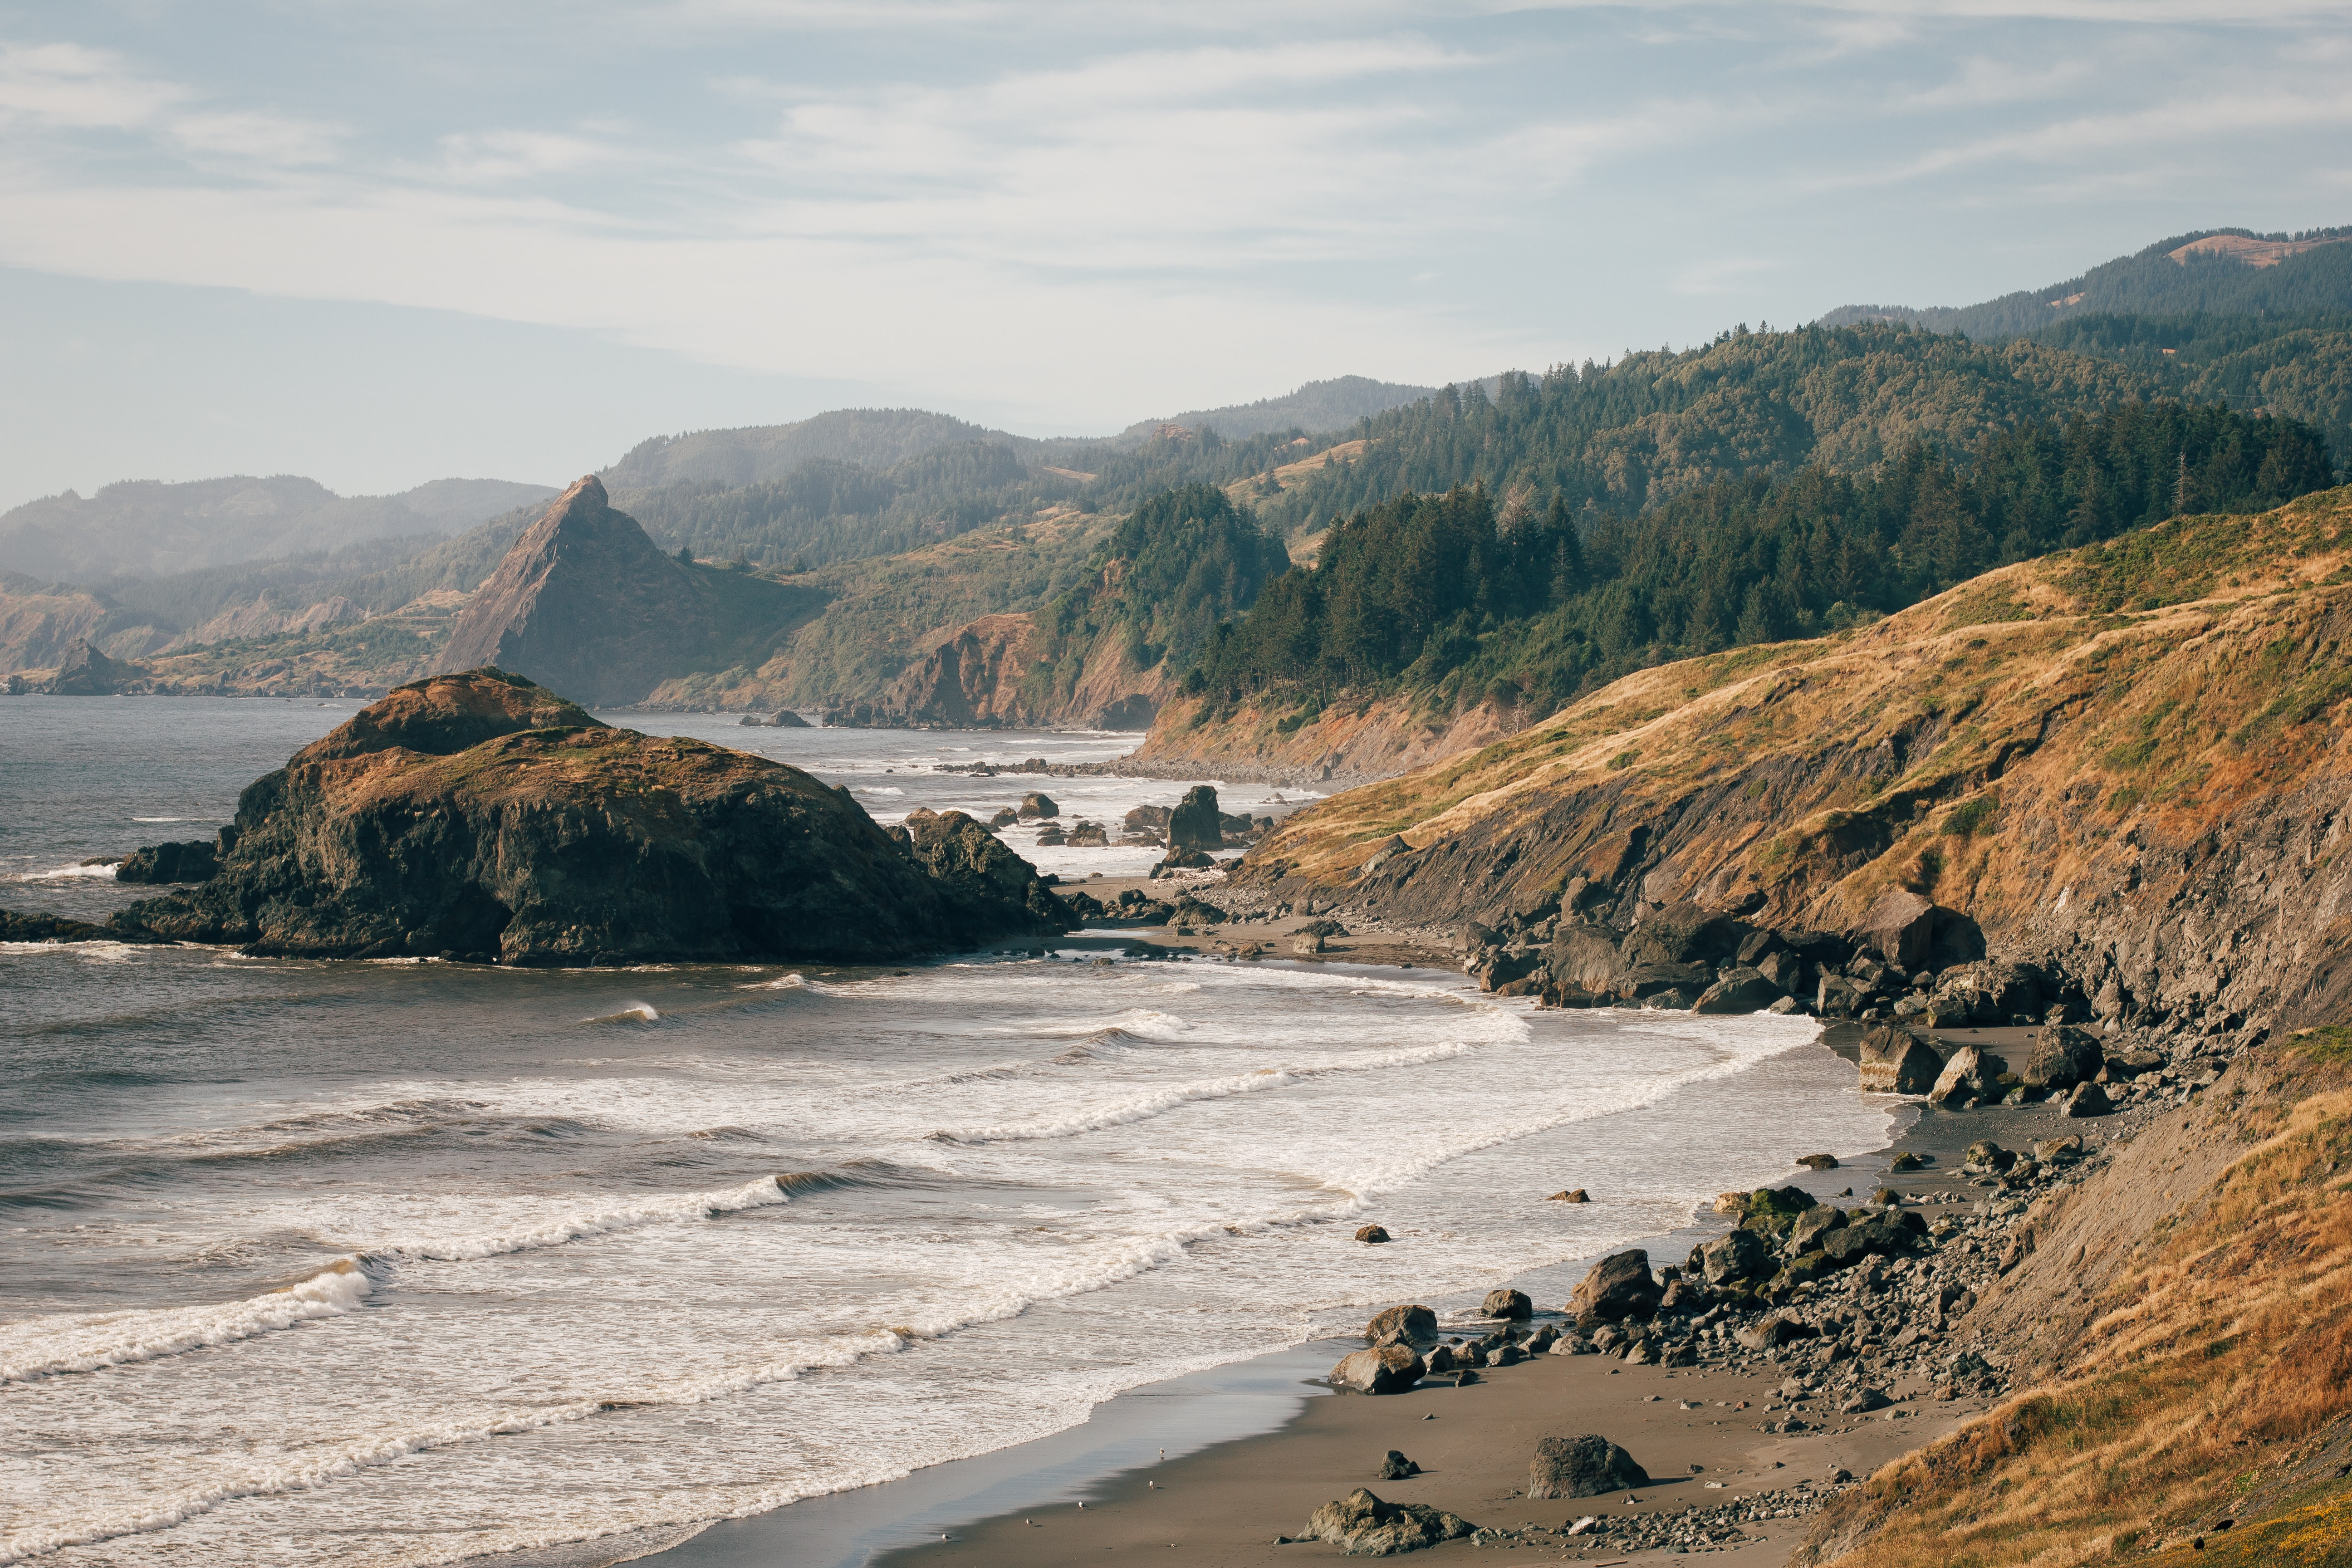 Overview of the rocky coastline at the Gold Beach